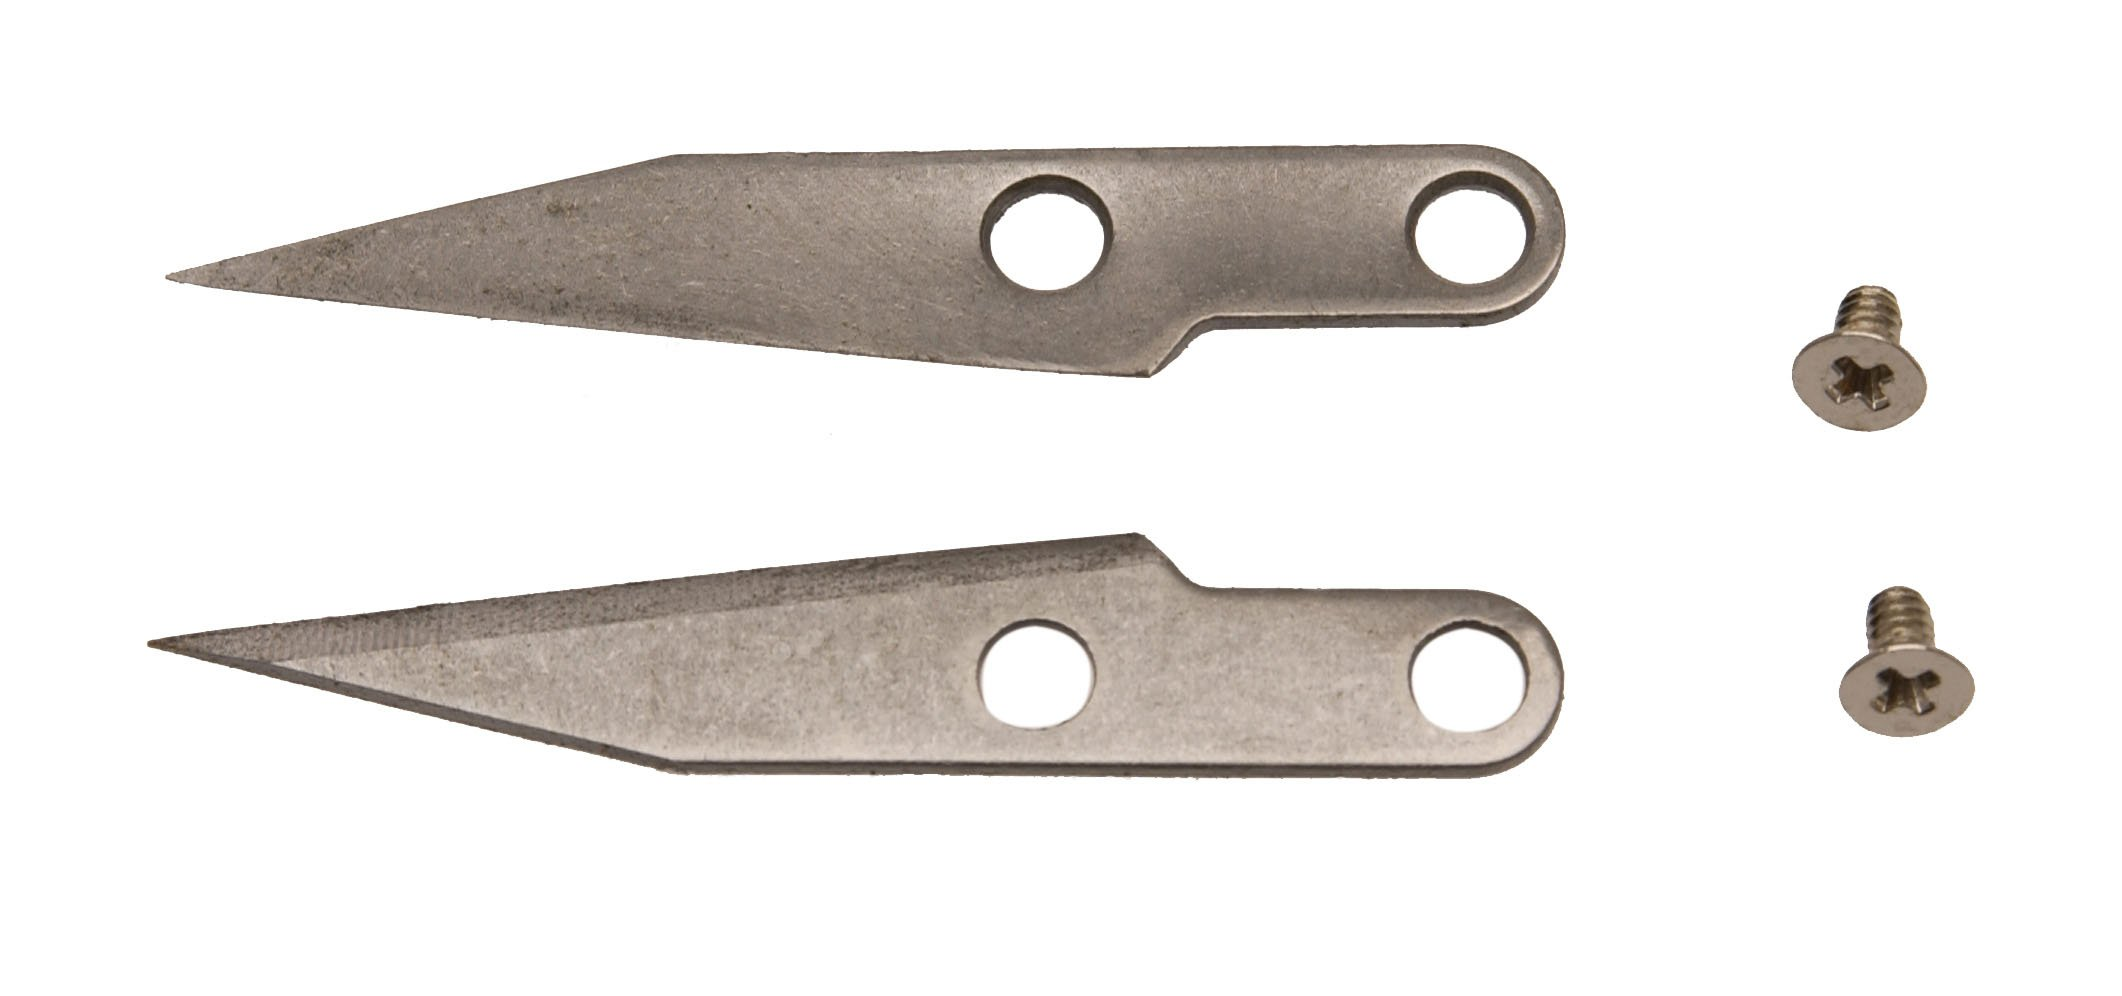 Crescent Wiss Replacement Sharp Blades for 1570B - T9328 by Wiss